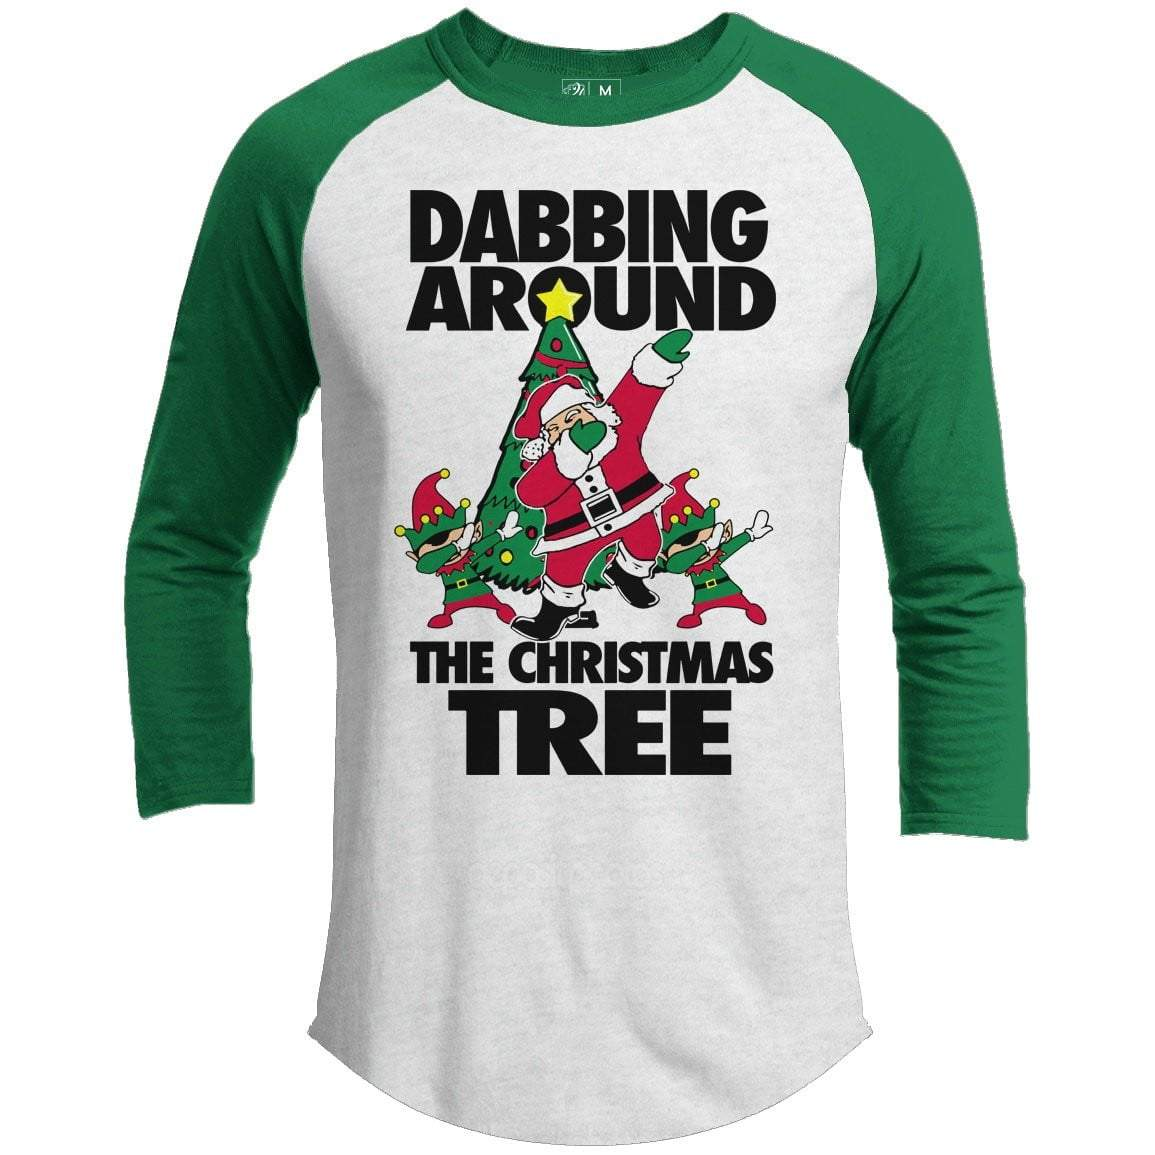 DABBING AROUND TREE Premium Youth Christmas Raglan